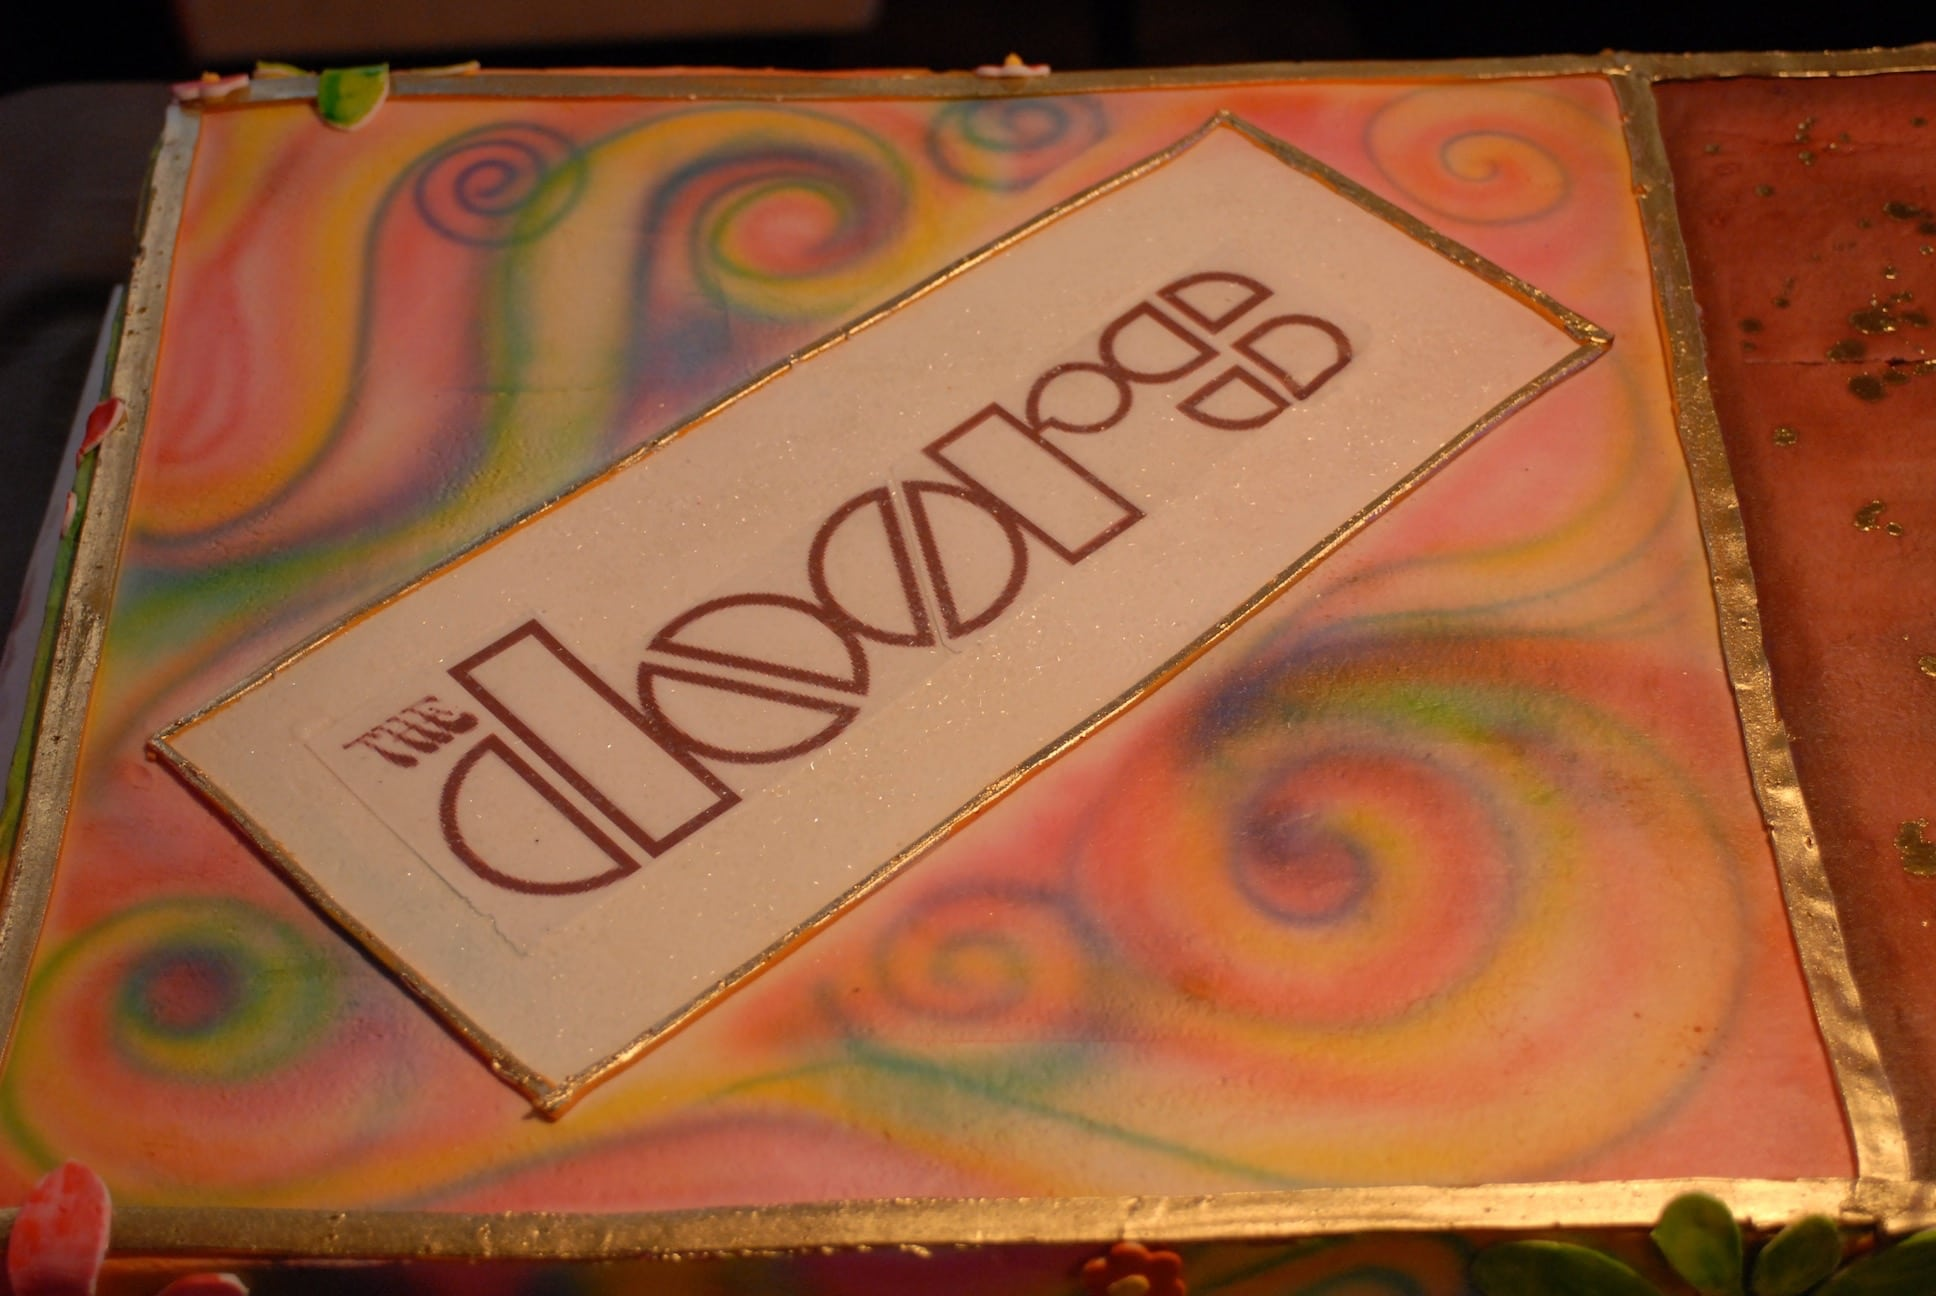 The Doors logo on cake